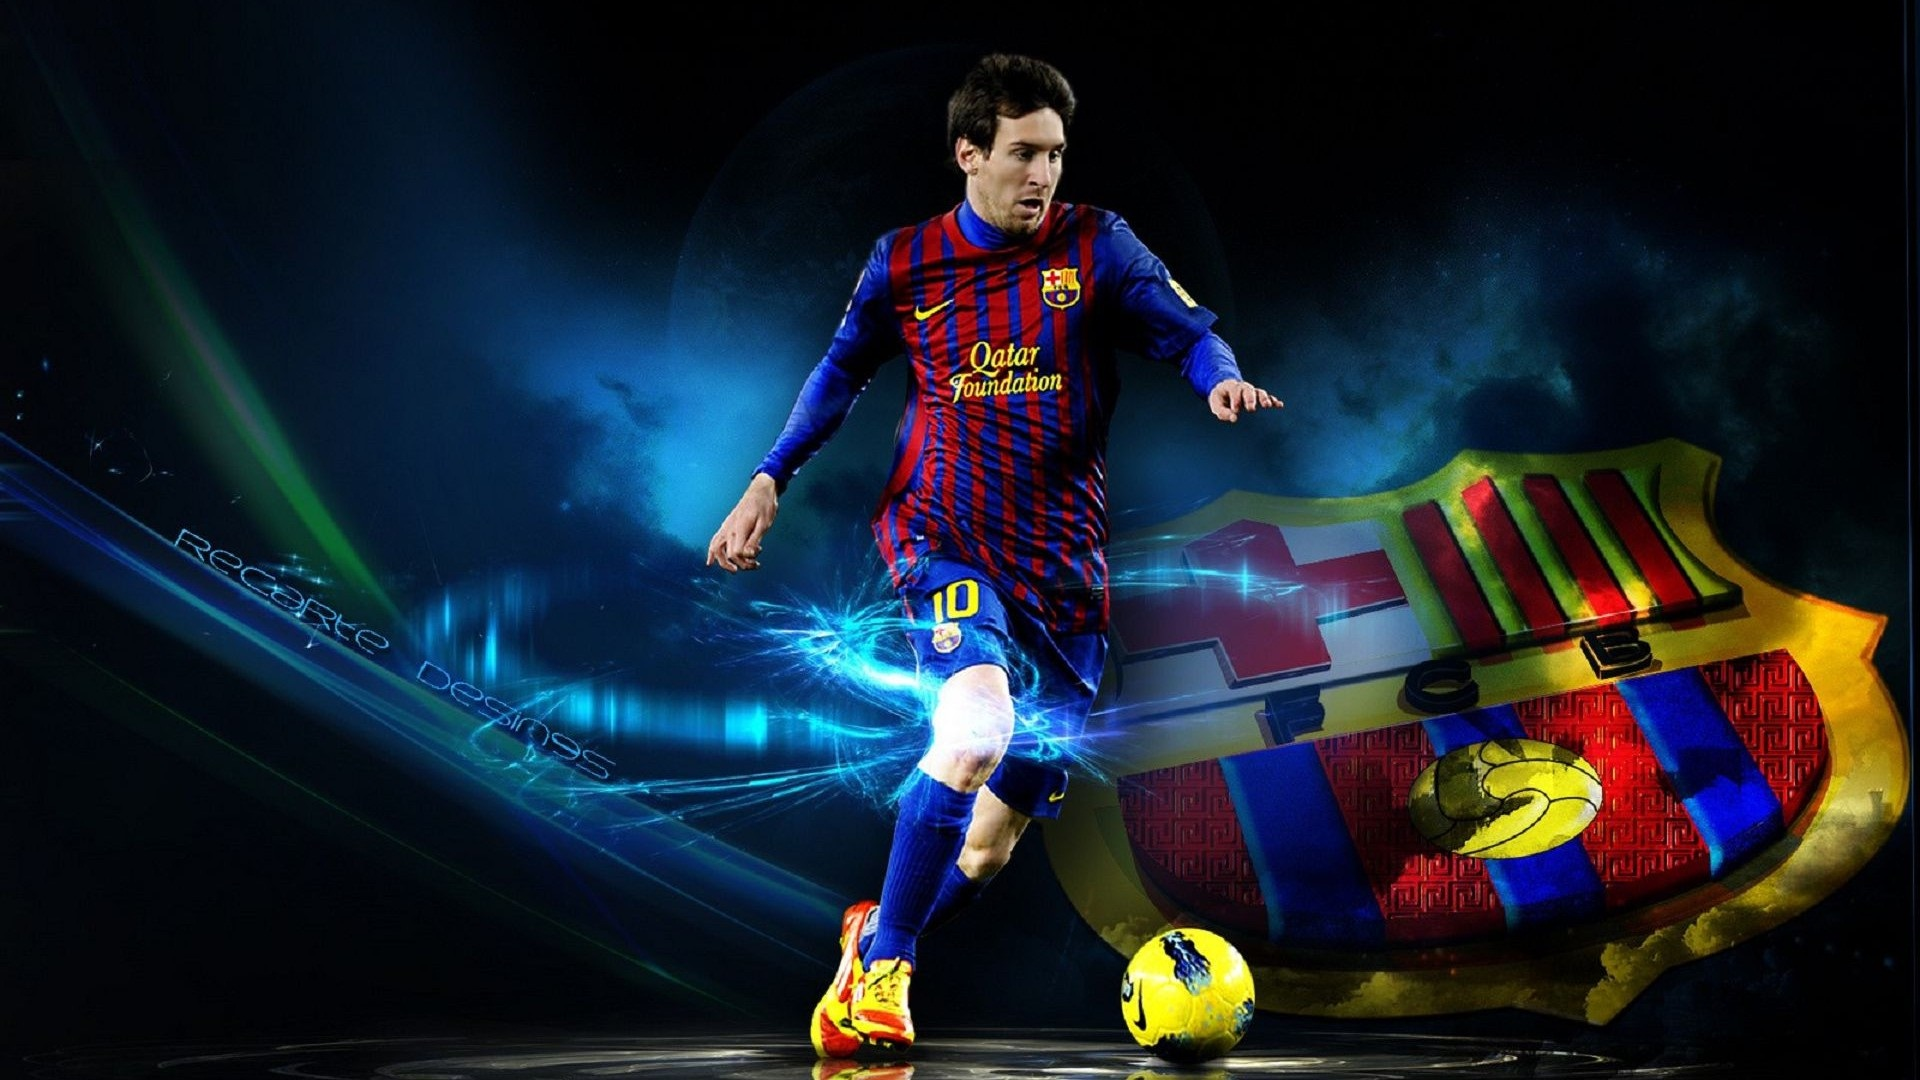 lionel messi new wallpaper | HD Wallpapers Rocks